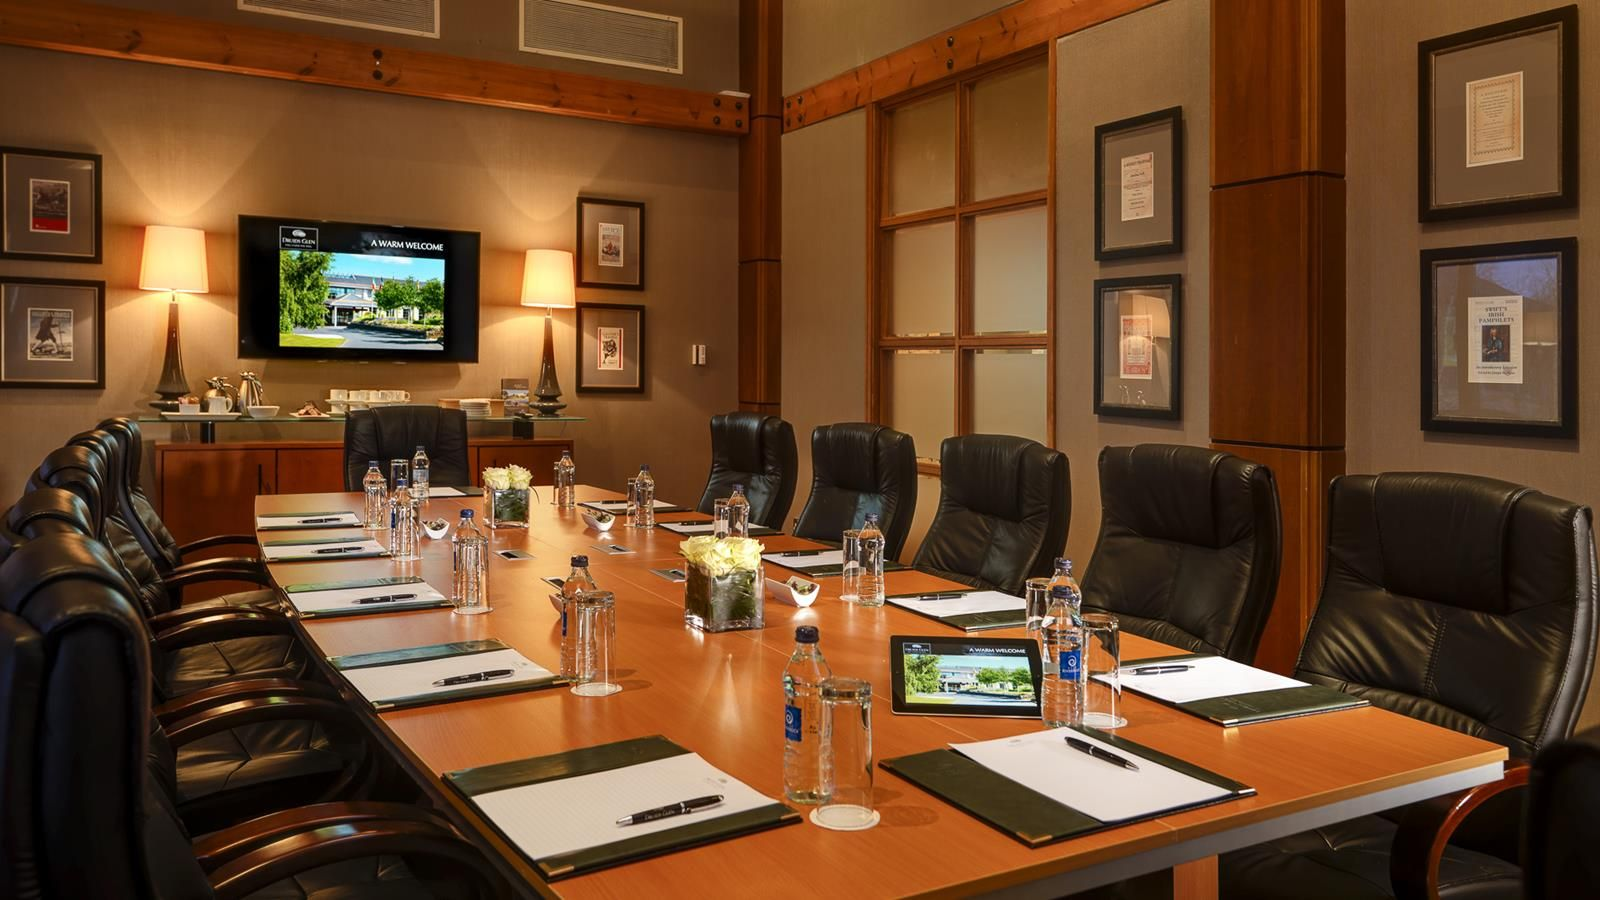 Meetings at druids glen druids glen resort for Small little luxury hotels